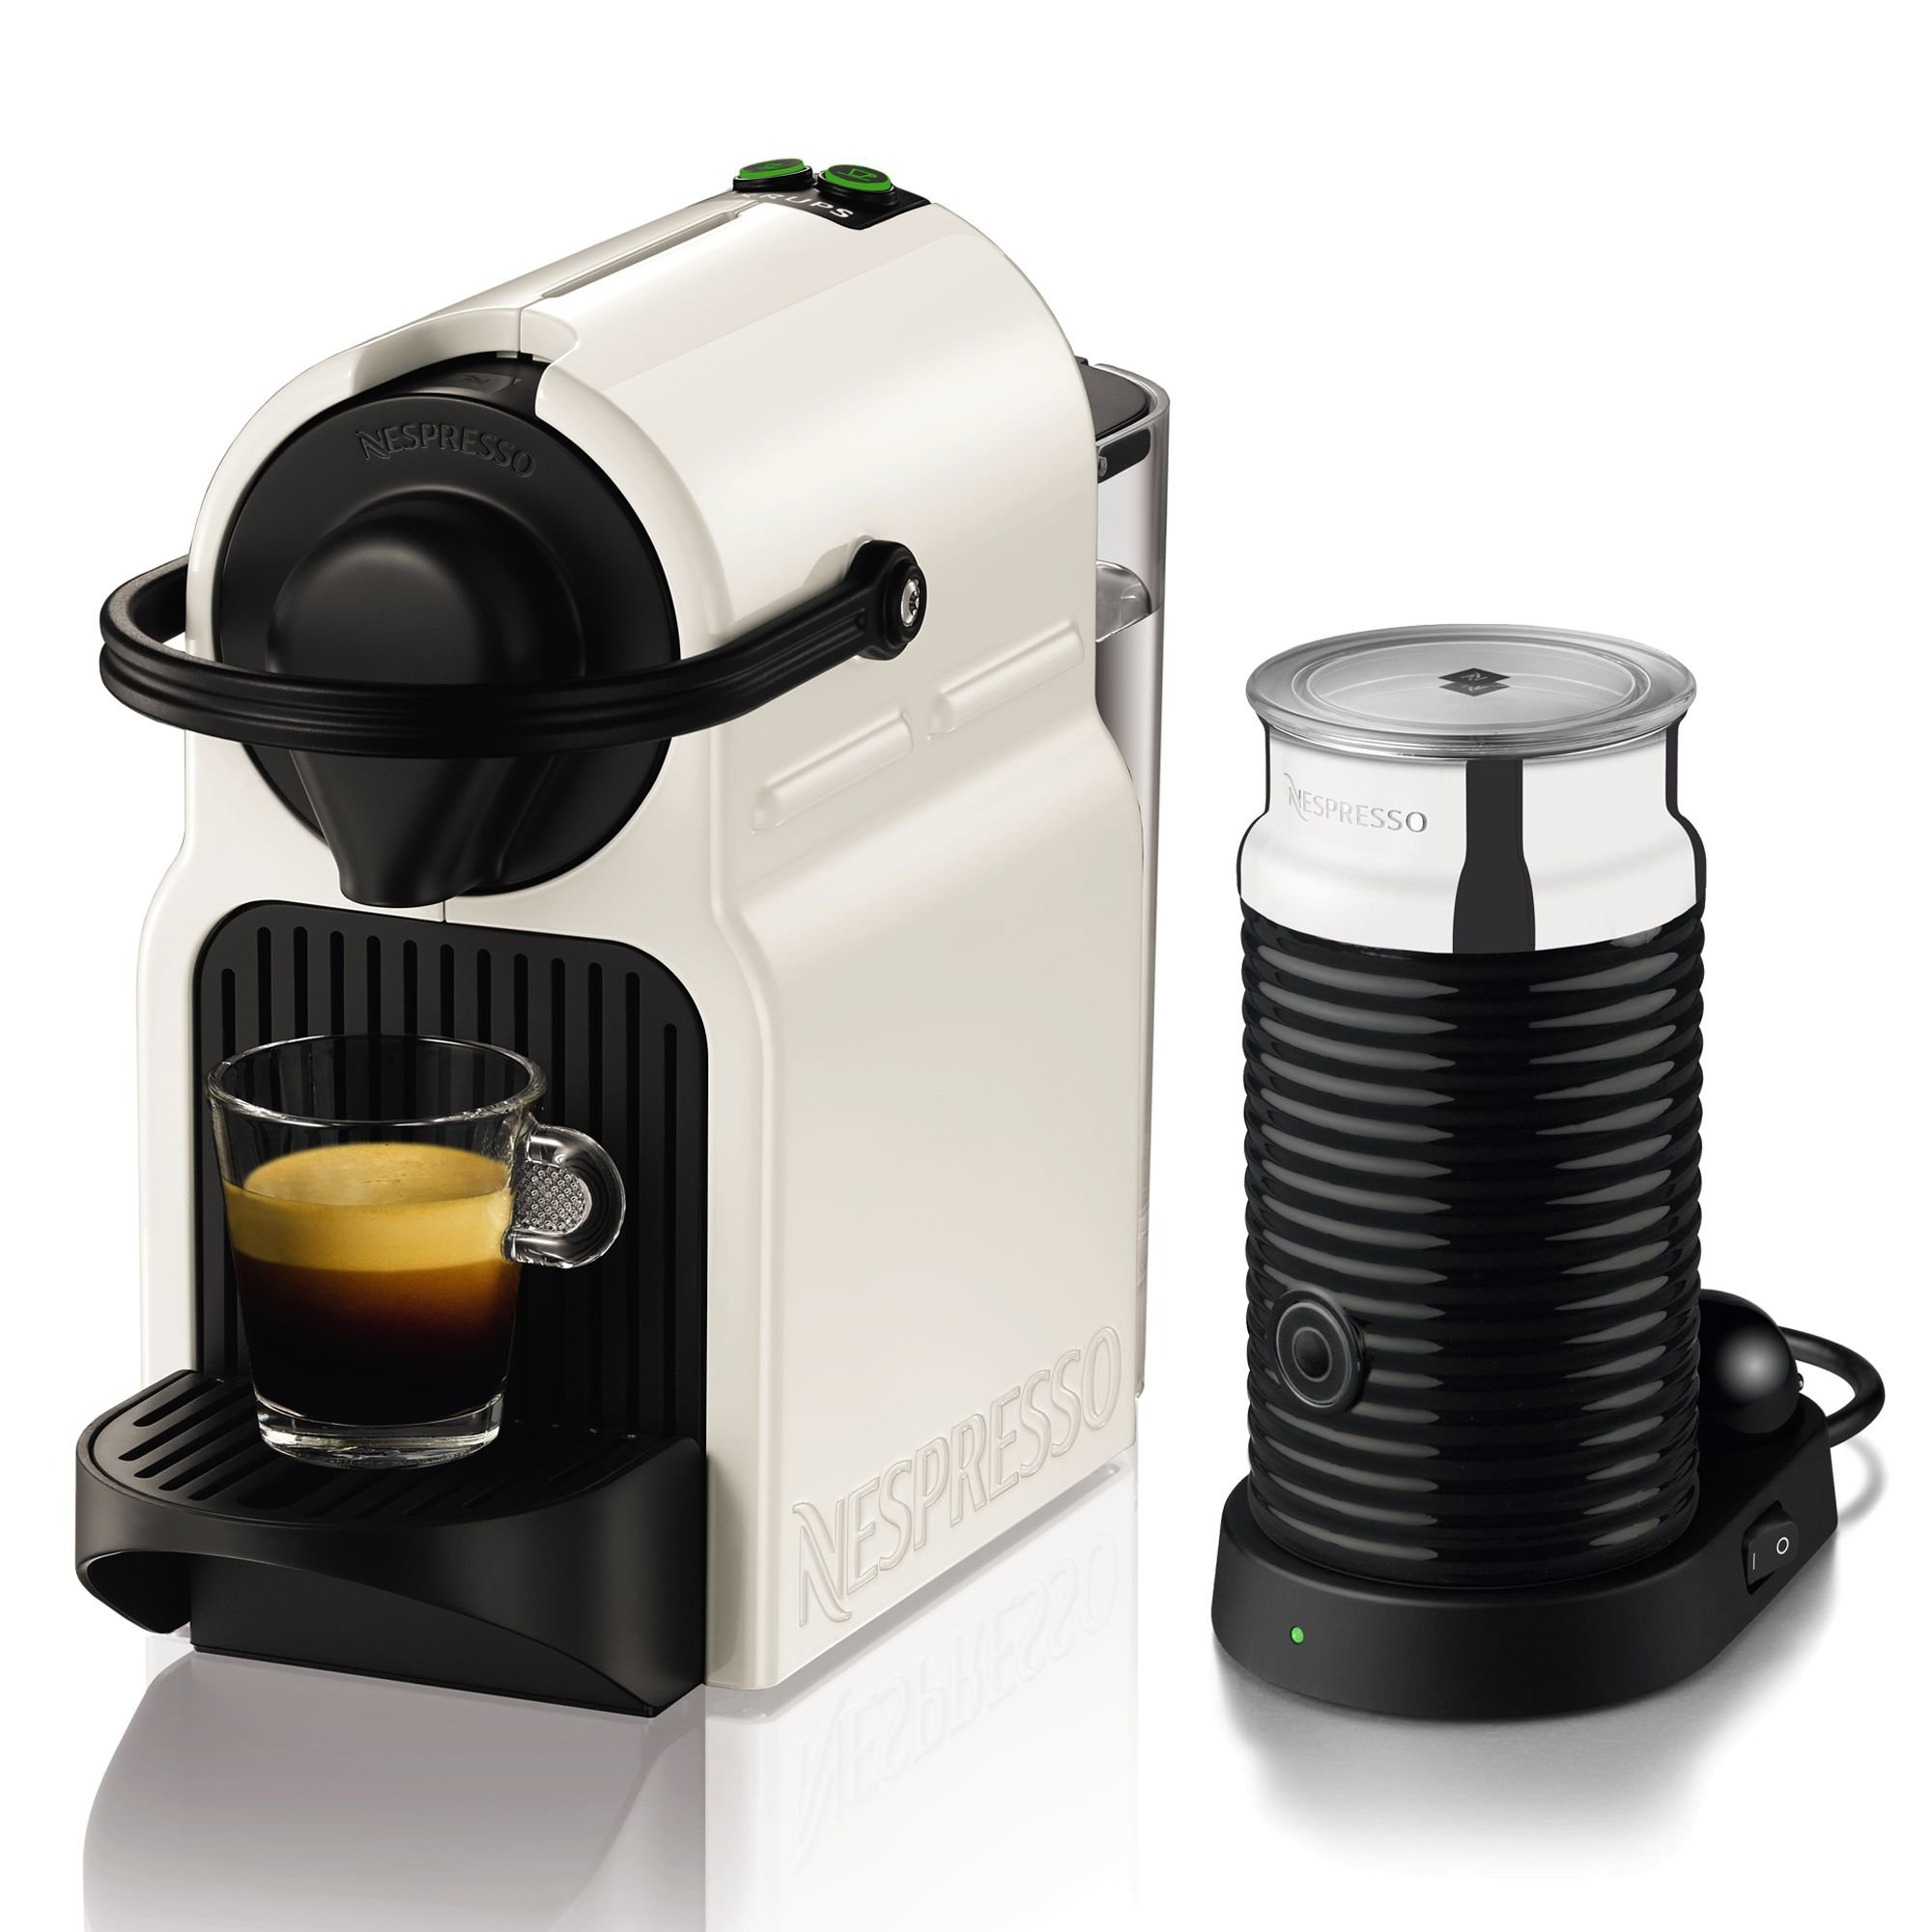 Krups Coffee Maker Capsules : Nespresso by KRUPS Nespresso inissia by KRUPS Coffee Capsule Machine with Aer... eBay